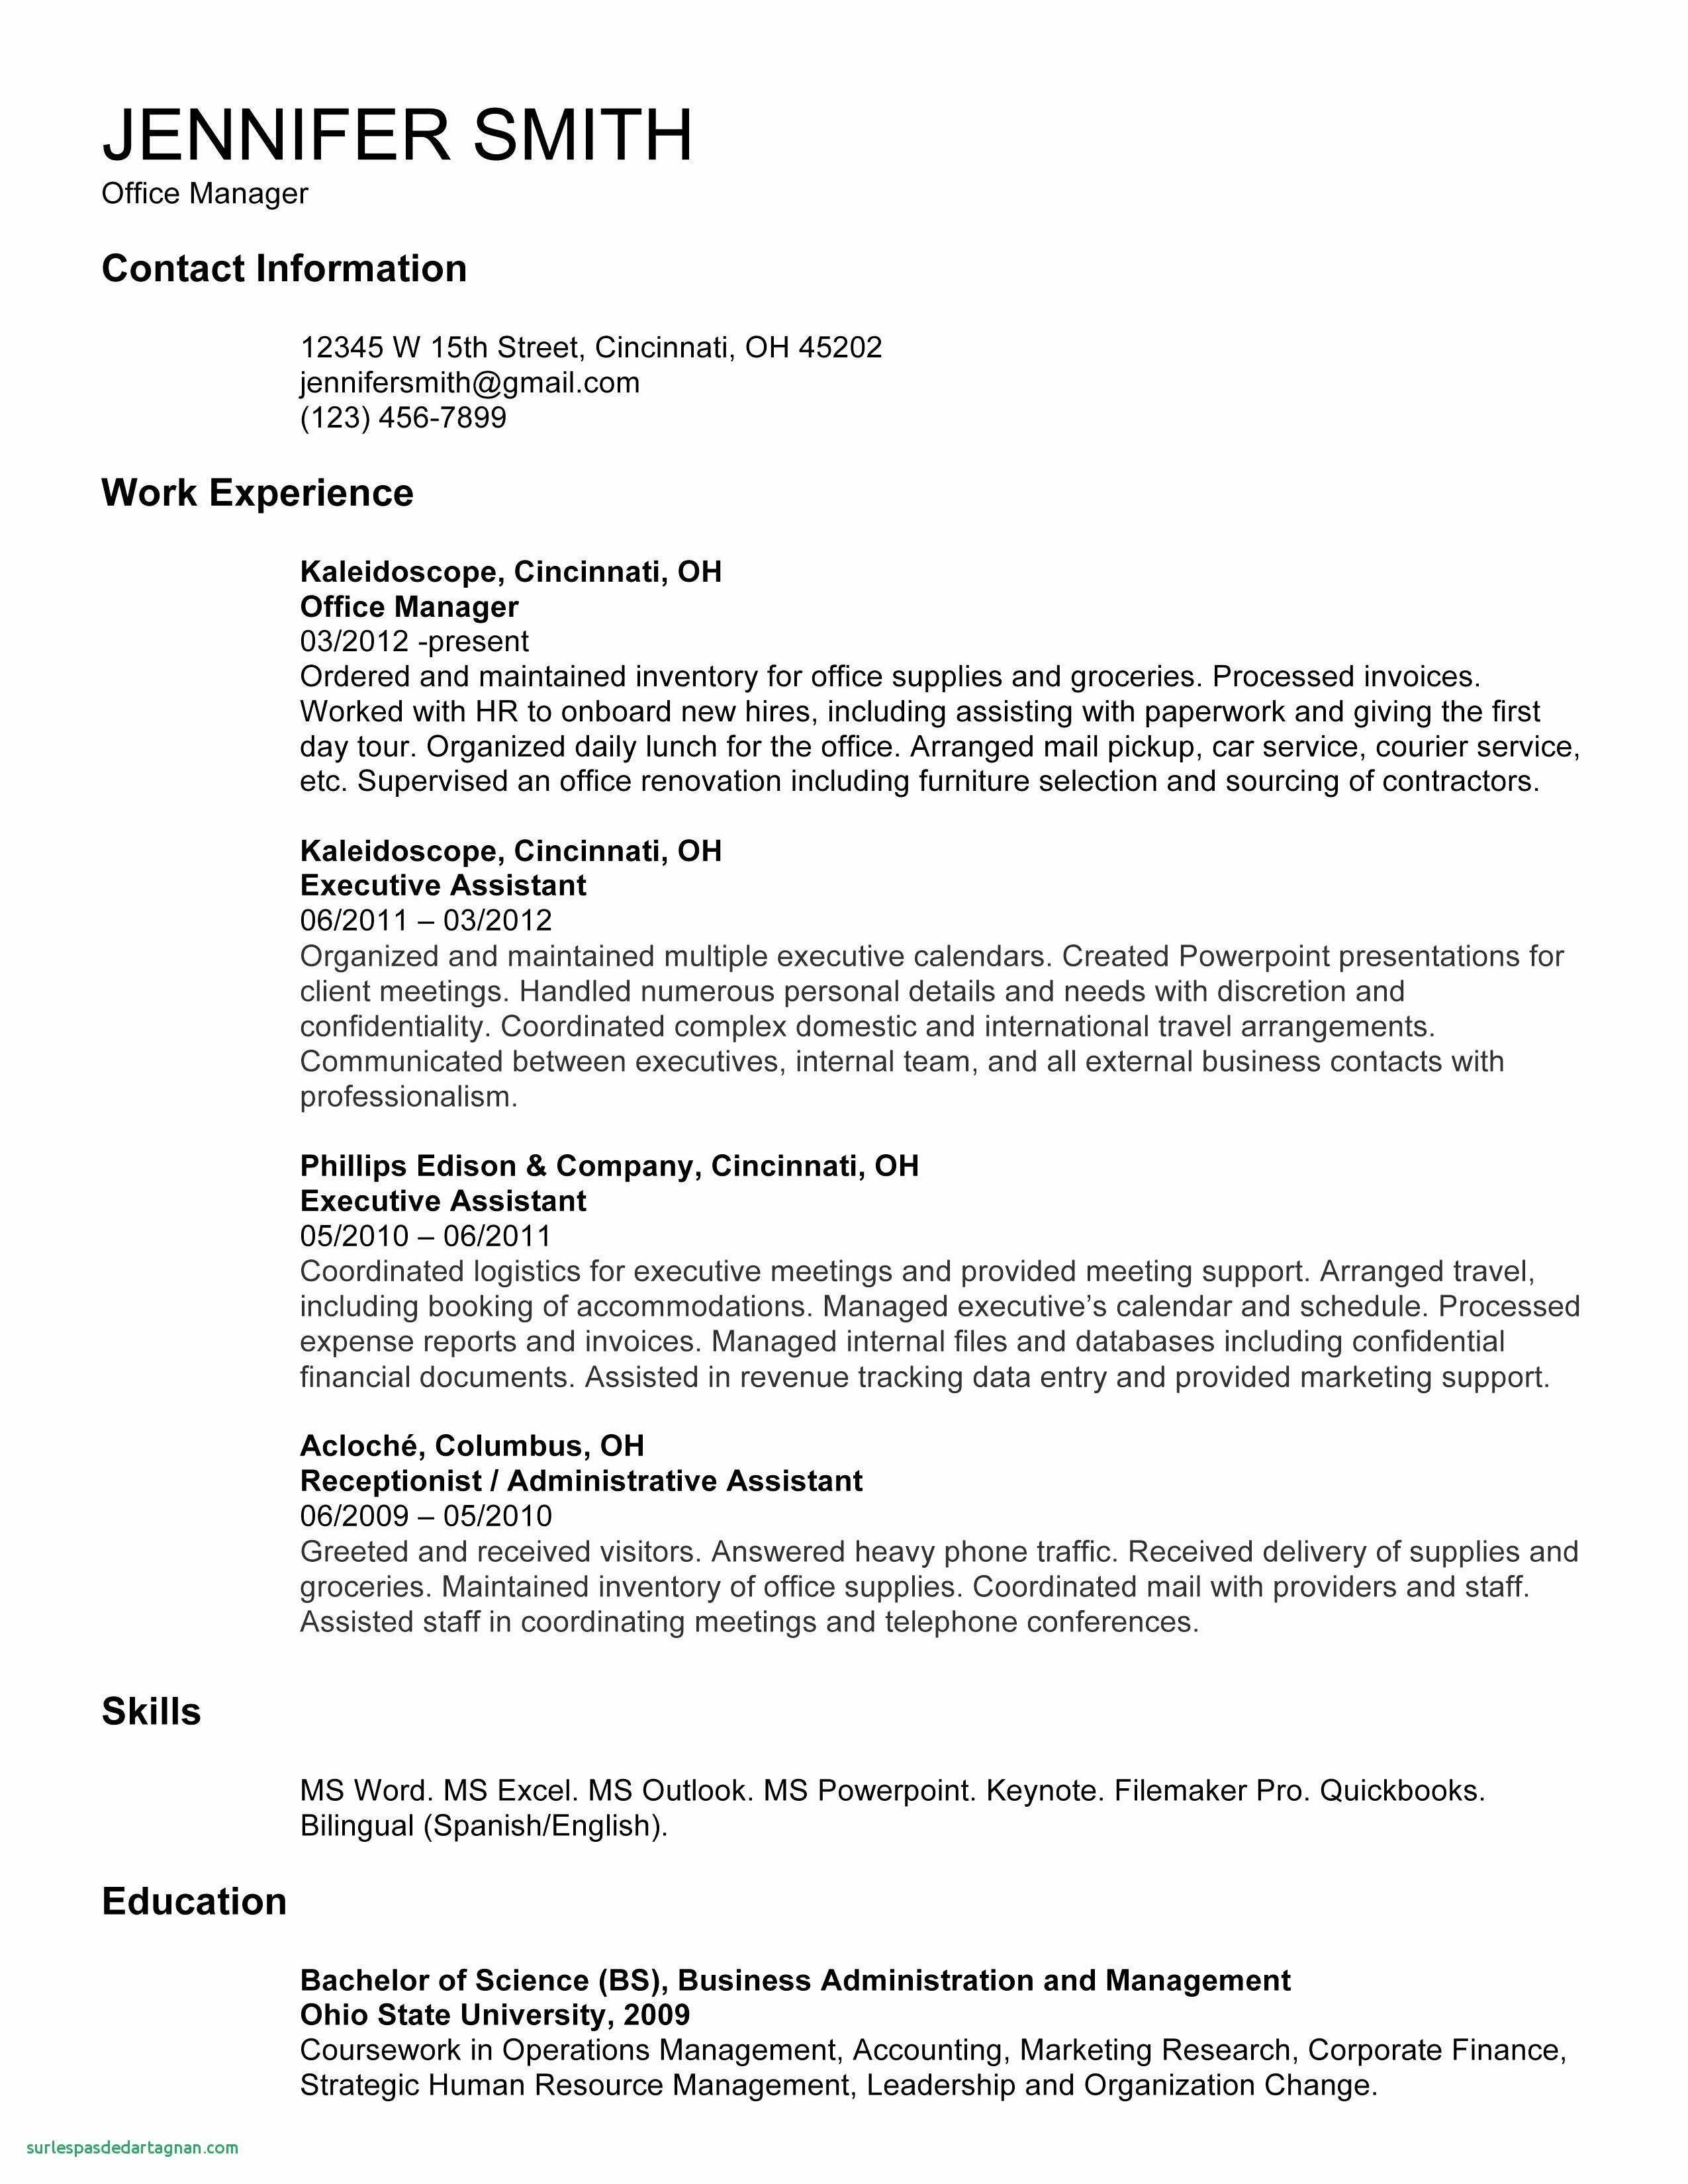 Science Resume Template - Resume Template Download Free Unique ¢Ë†Å¡ Resume Template Download